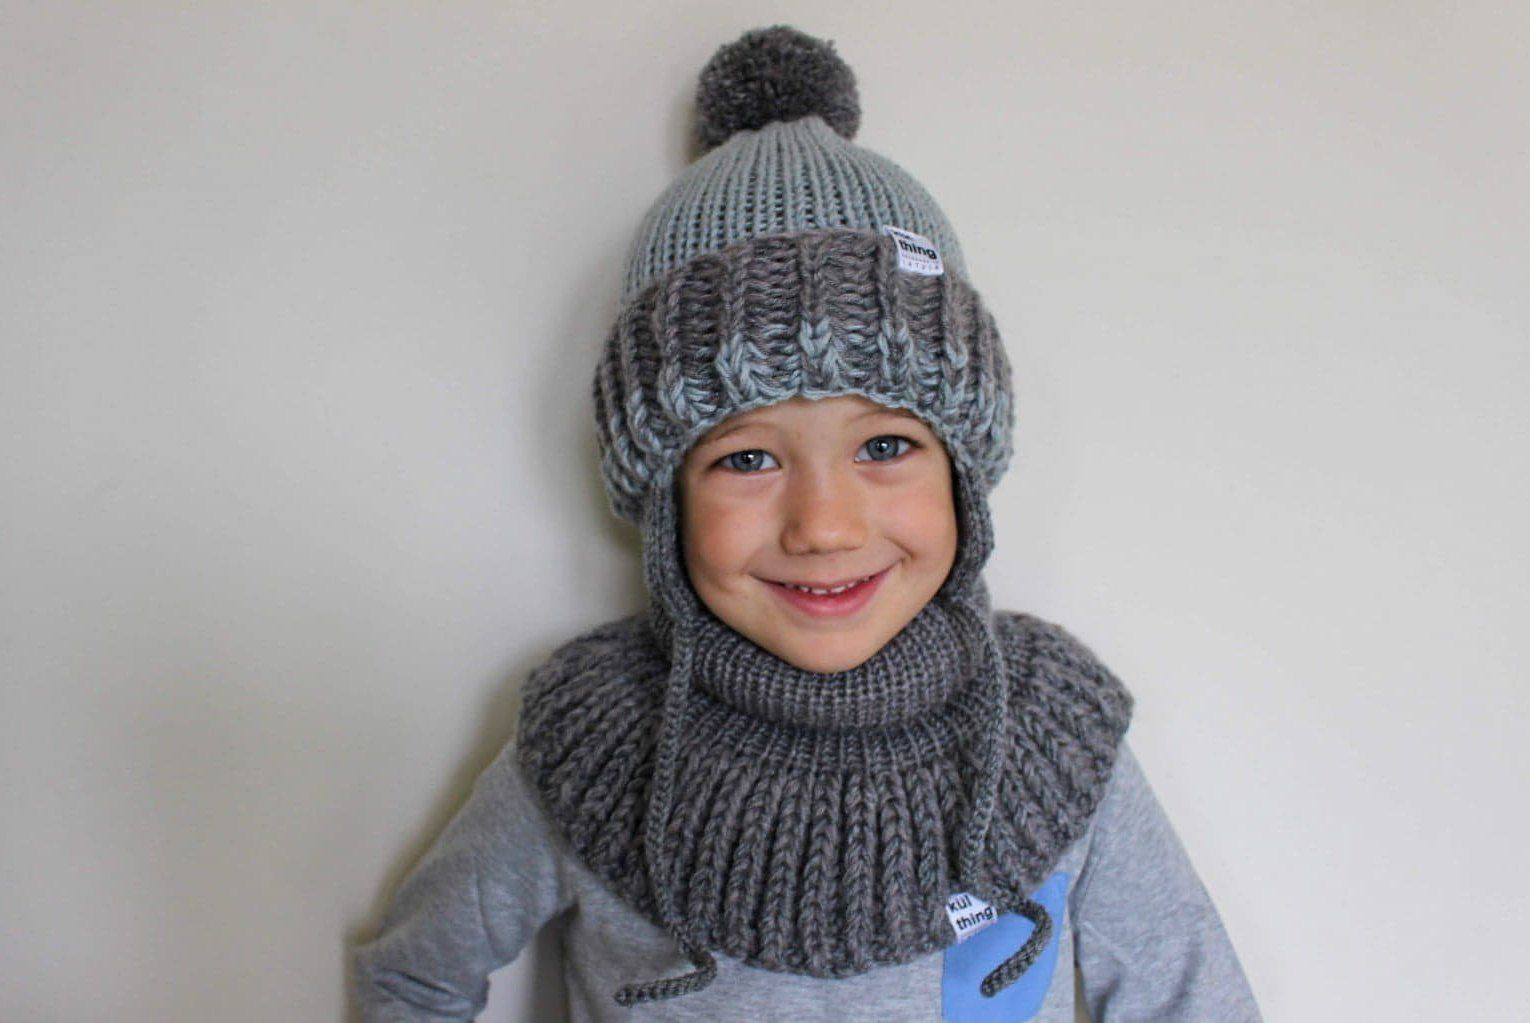 knit unisex winter set for kid knitted snood scarf Christmas gift for kids Grey white knitted toddlers set knit pom pom ear flaps hat